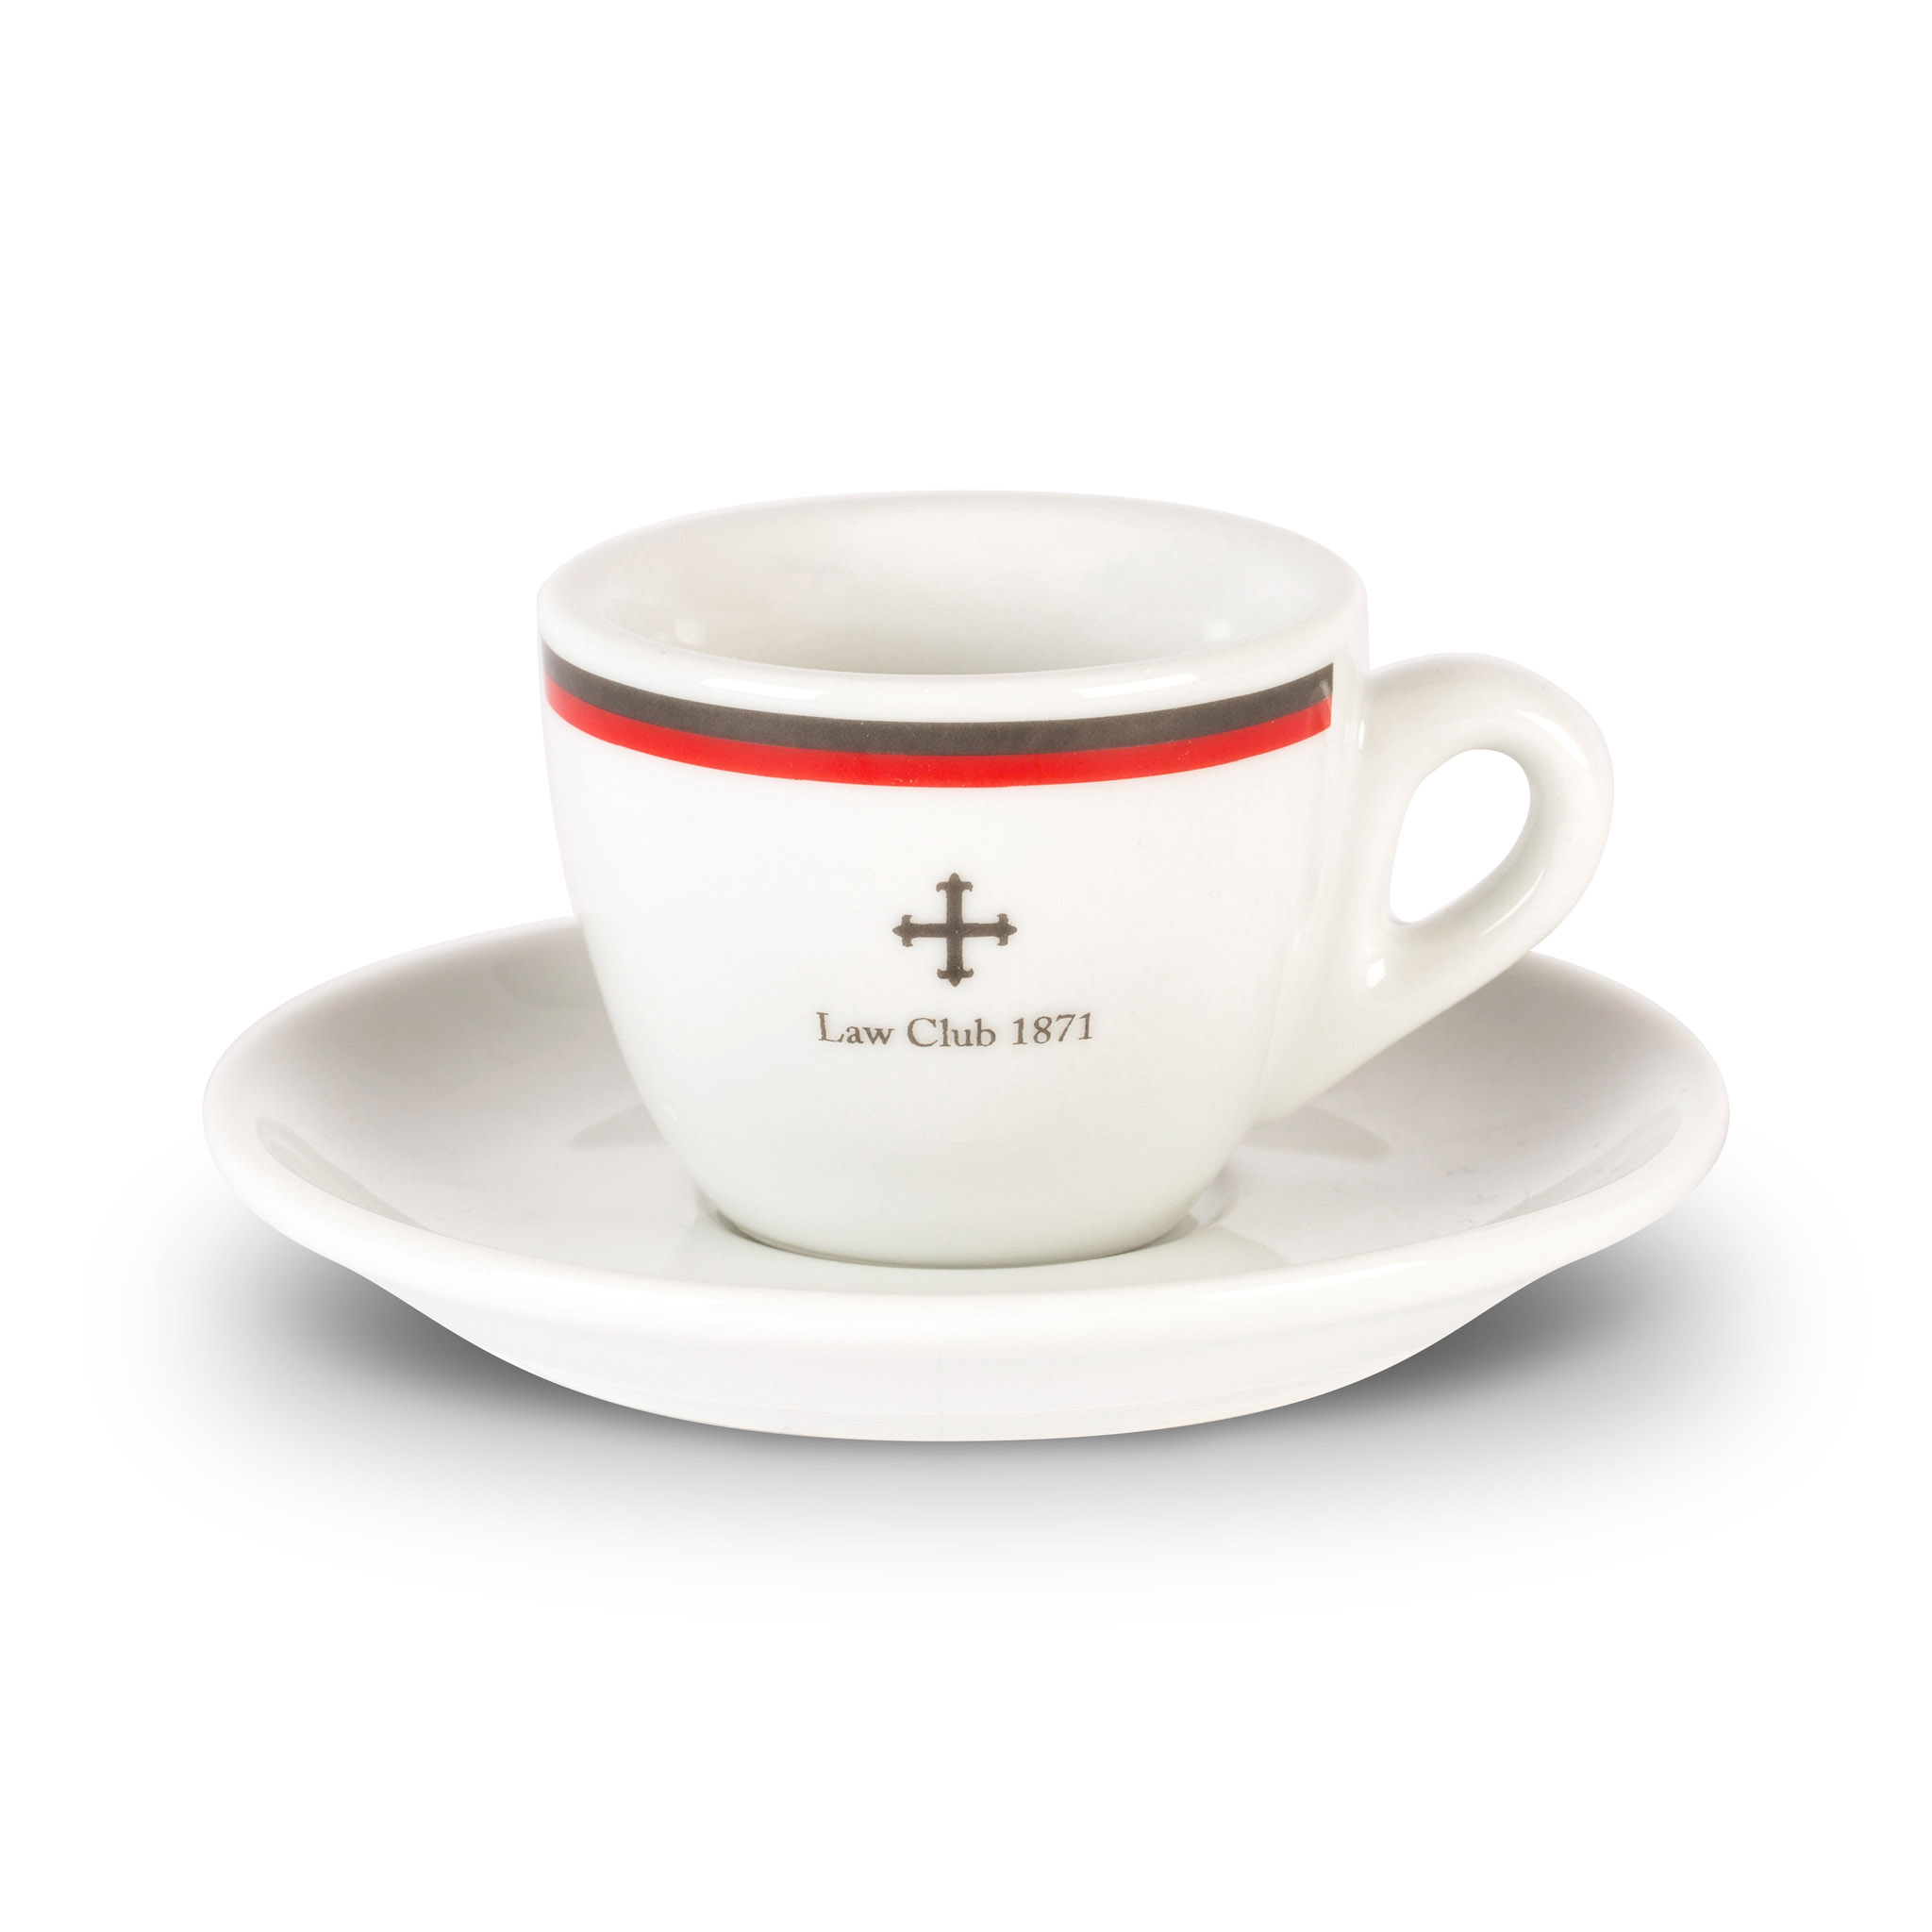 Law Club espresso cup and saucer